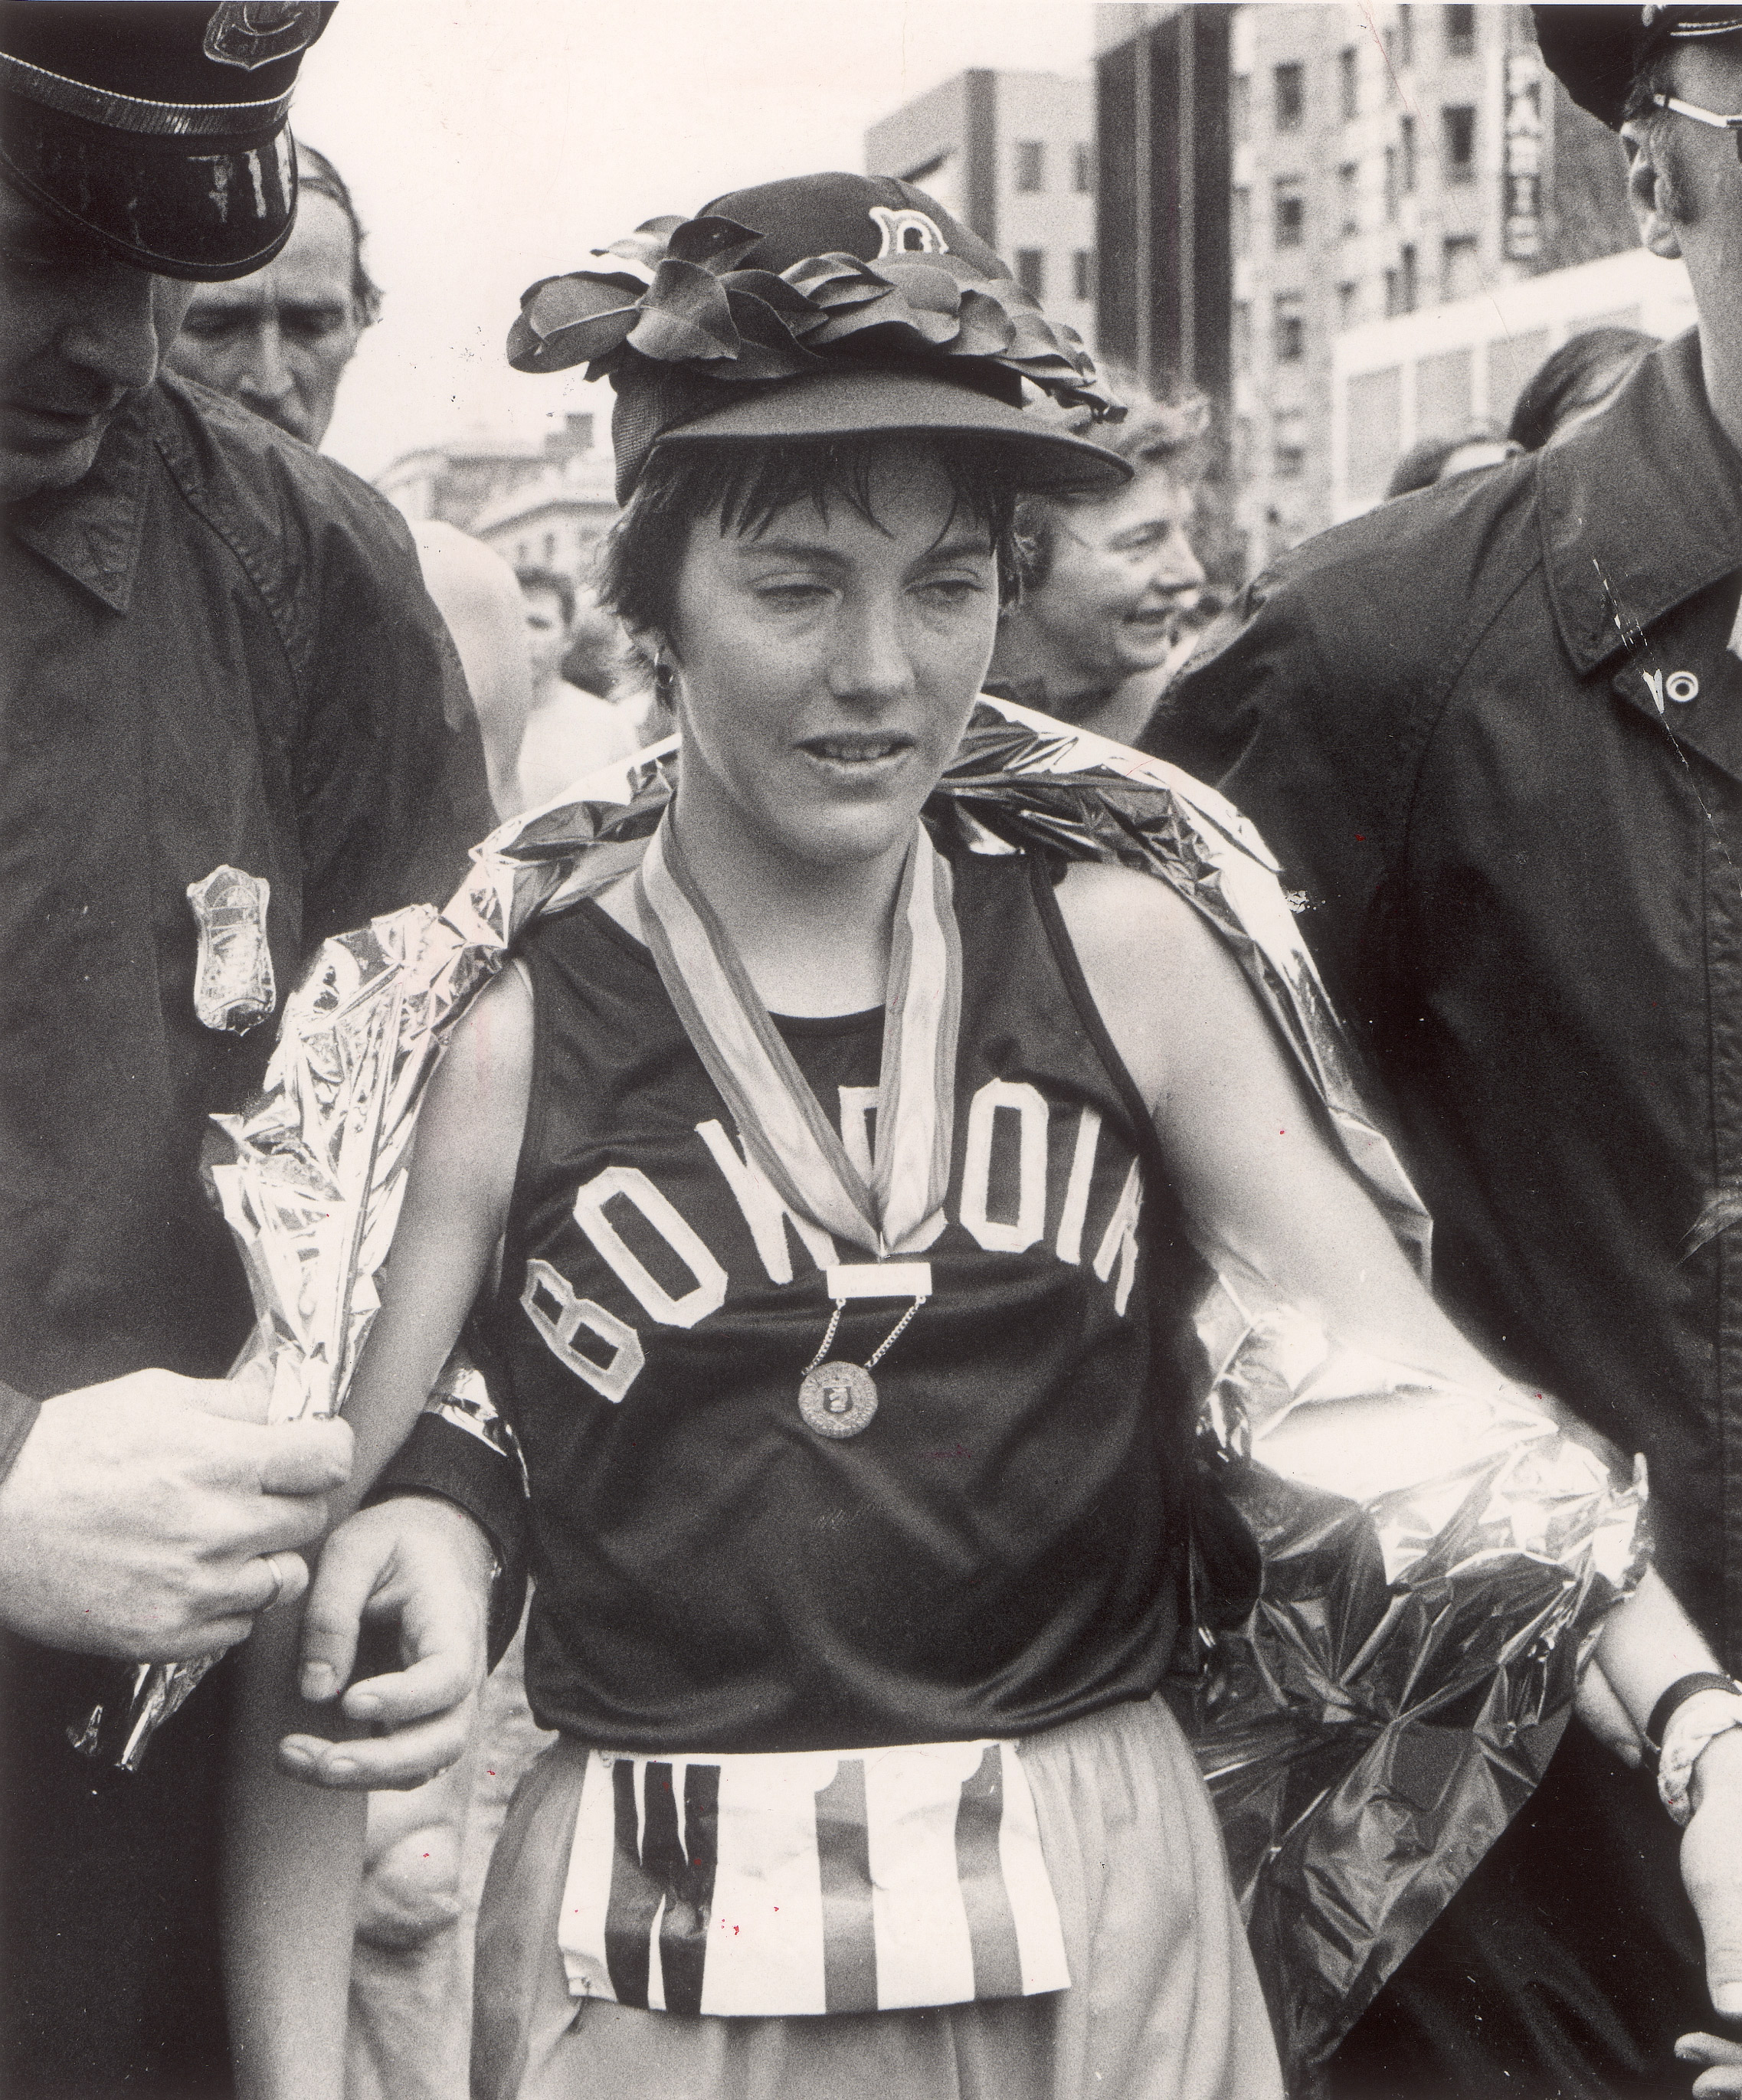 Joan Benoit, the women's winner of the Boston Marathon, April 16, 1979.